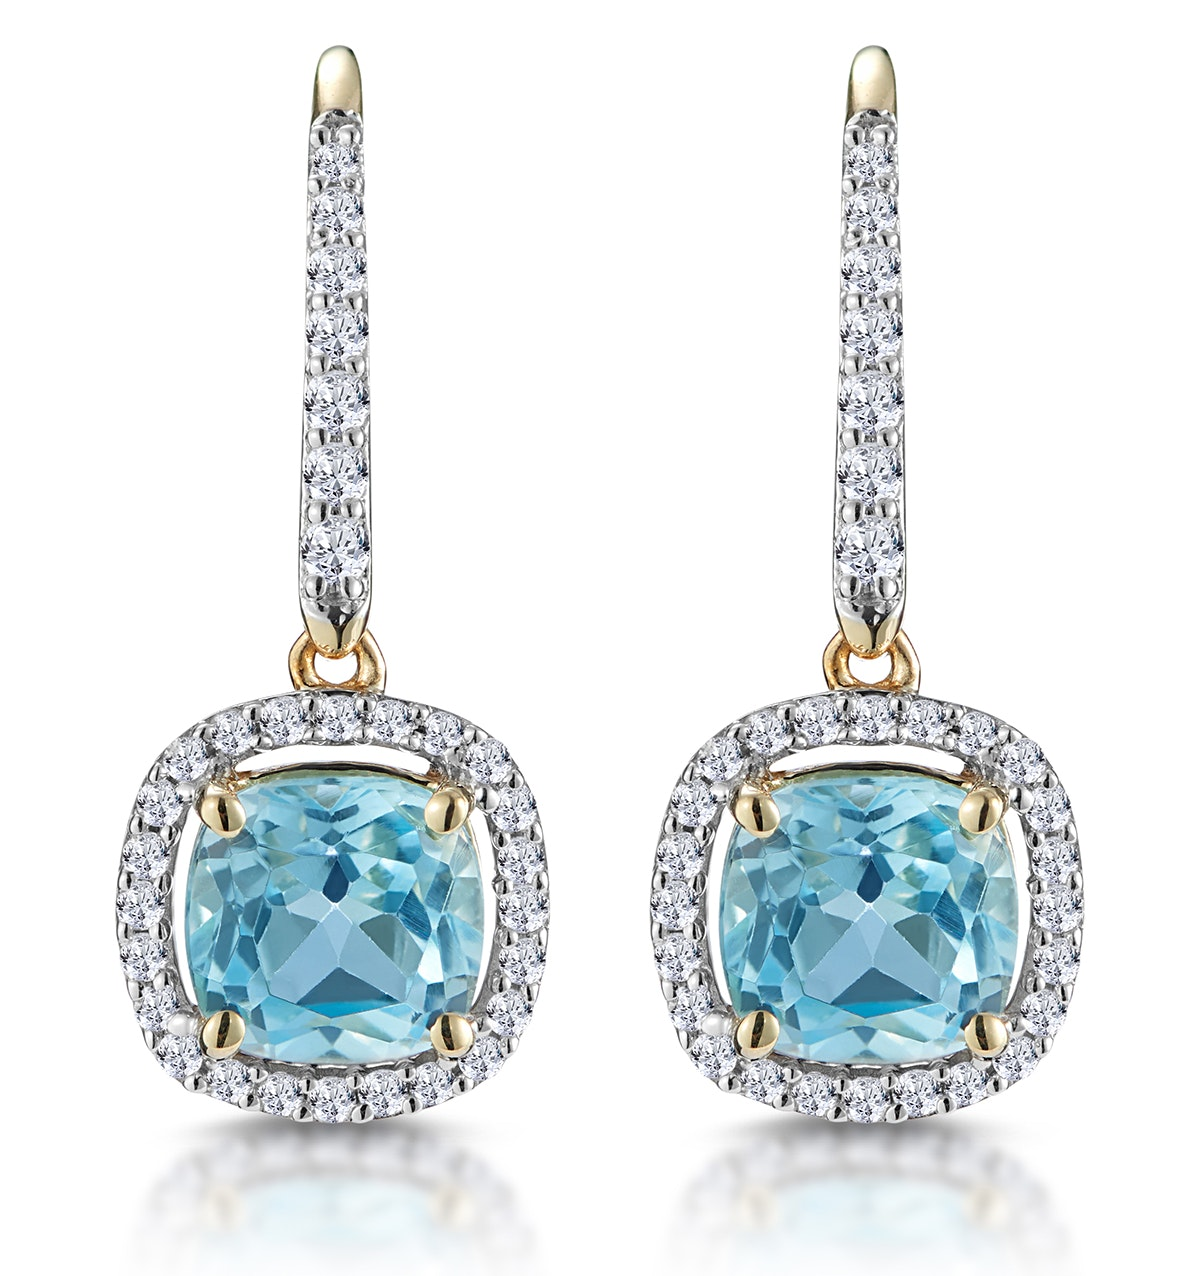 1ct Blue Topaz and Diamond Halo Earrings 18K Gold - Asteria Collection